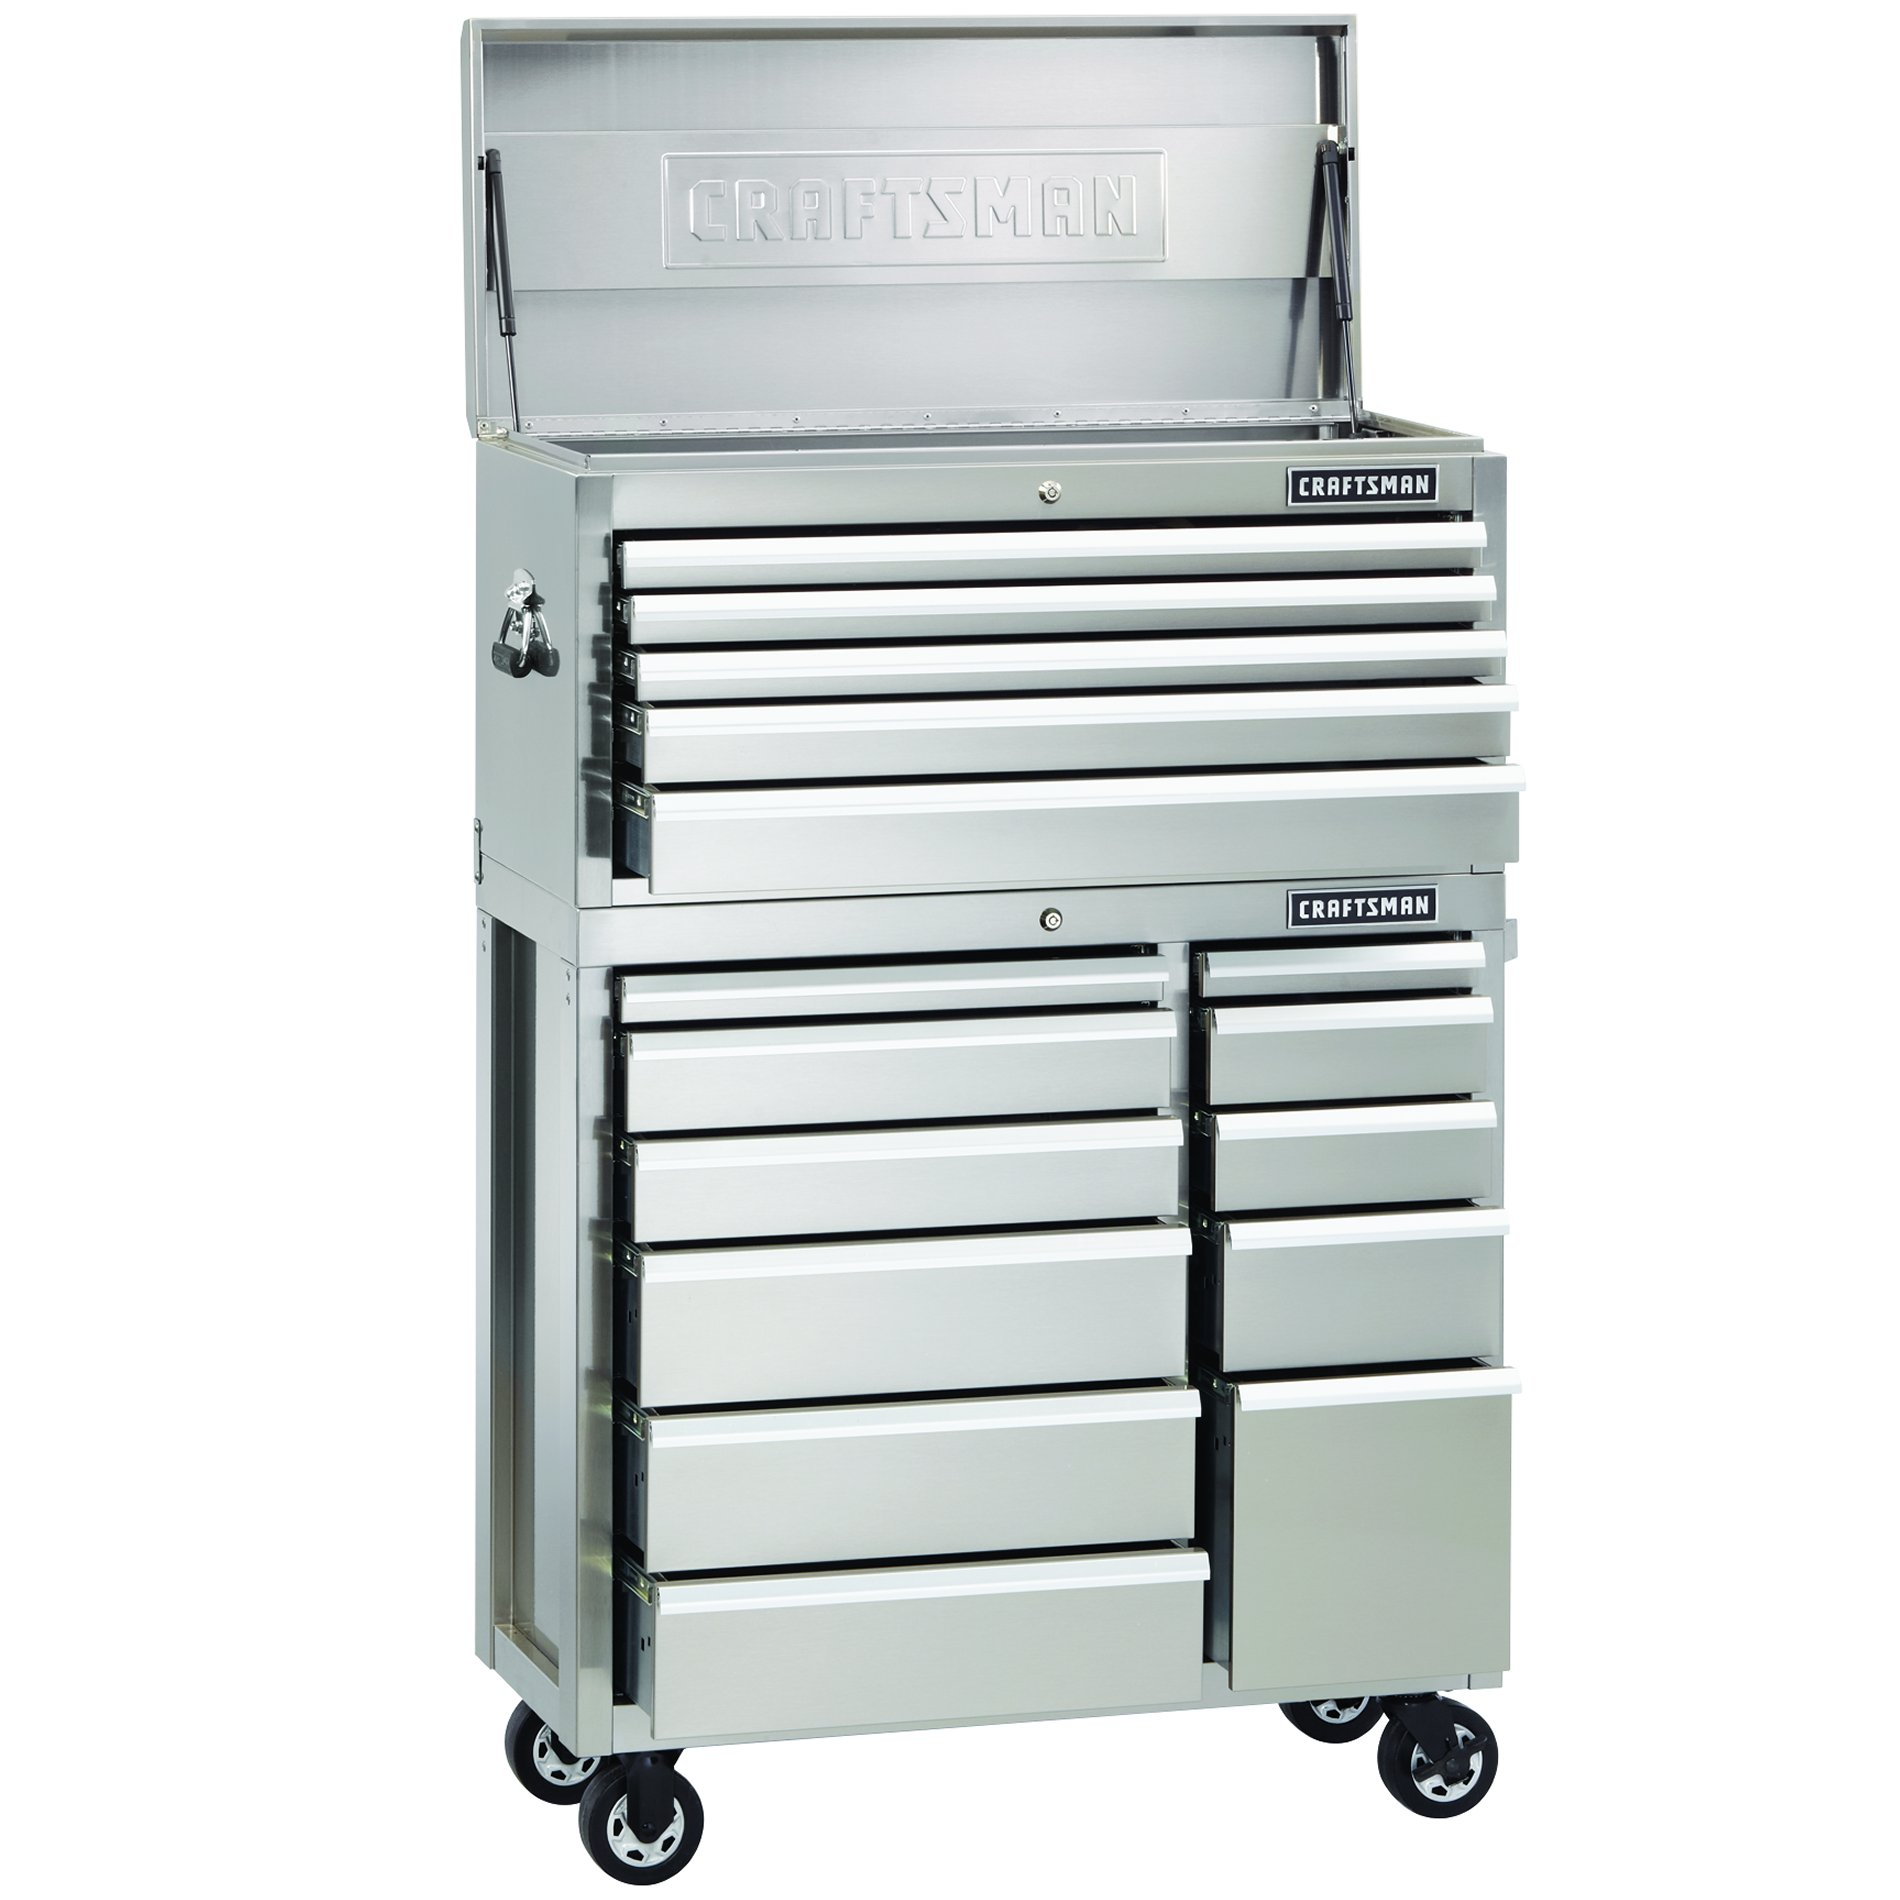 Craftsman 40-Inch 5-Drawer Premium Heavy-Duty Top Chest - Stainless Steel